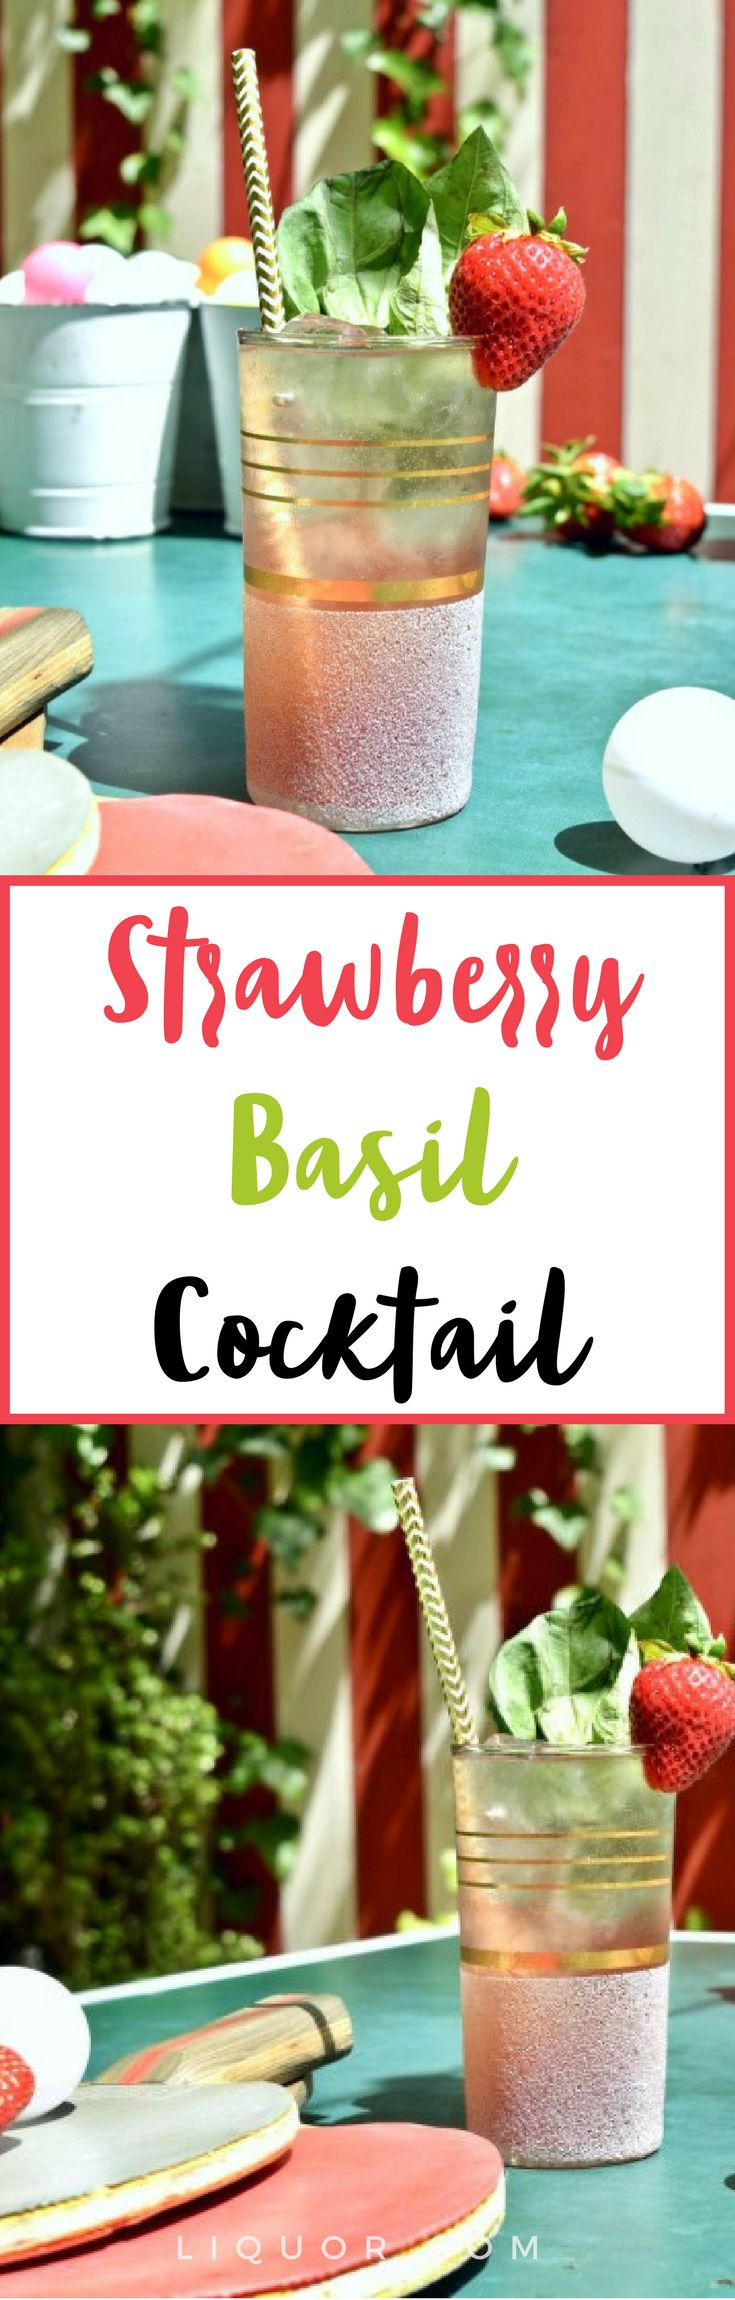 This #strawberry #basil #cocktail is a fruity dream come true